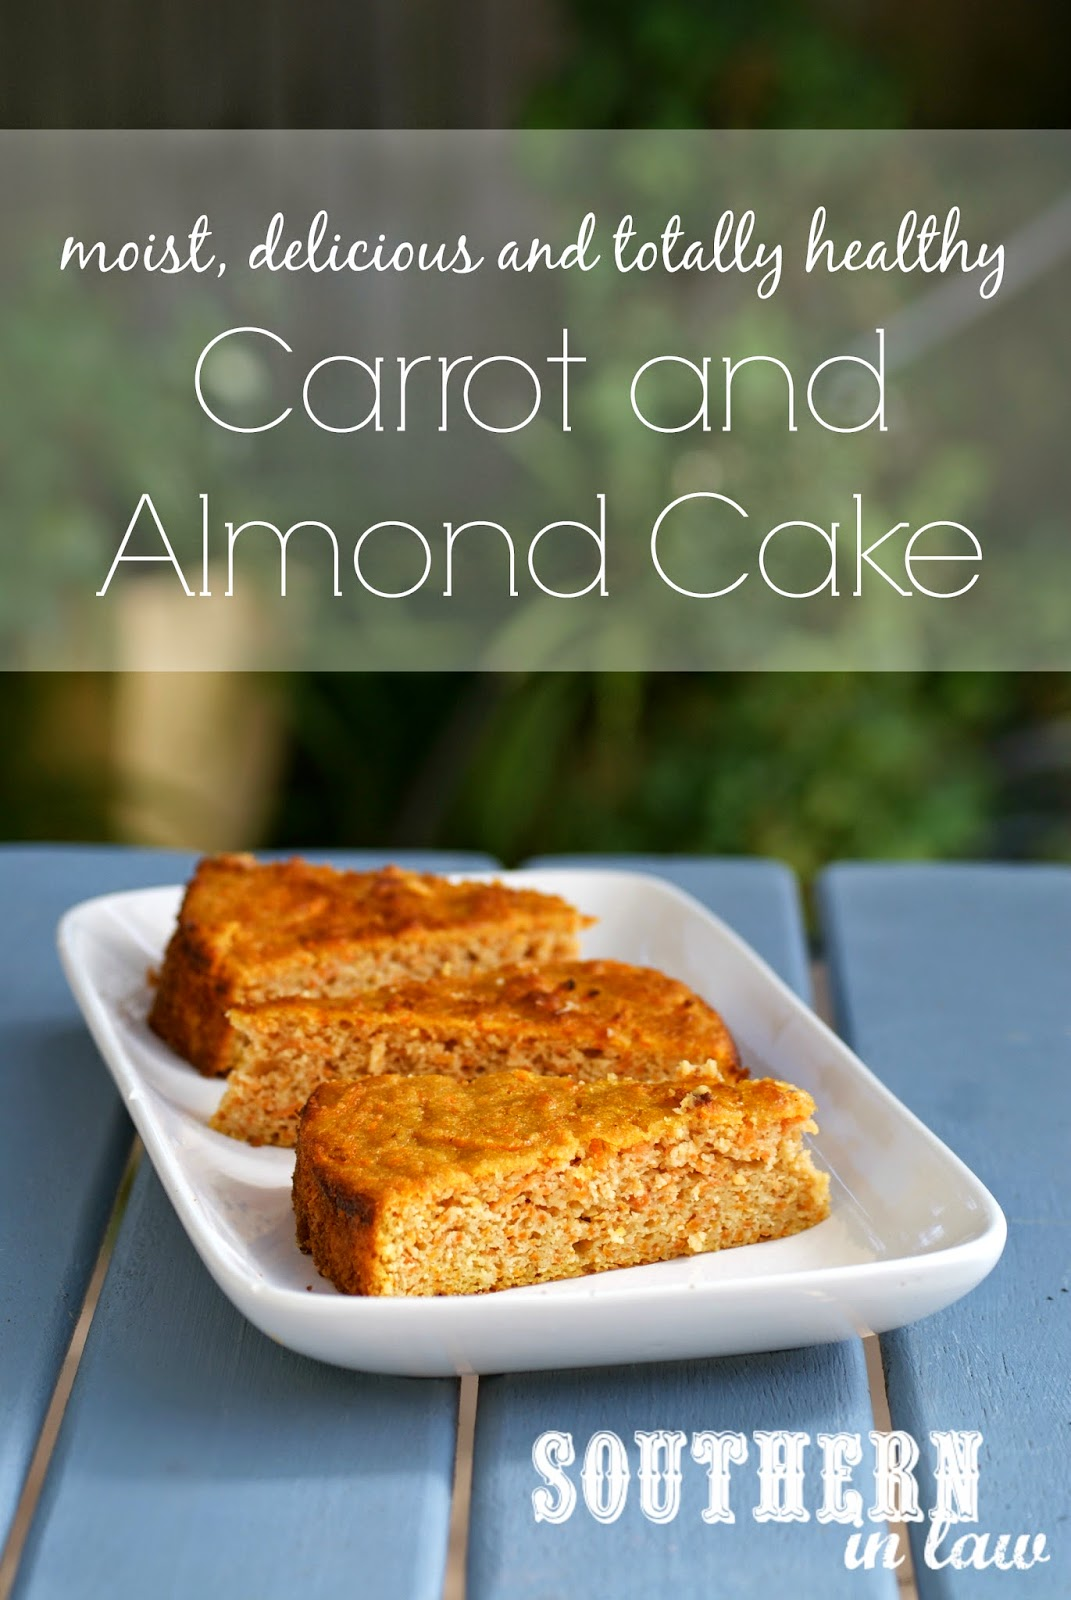 Healthy Carrot and Almond Cake Recipe - Gluten free, low fat, low sugar